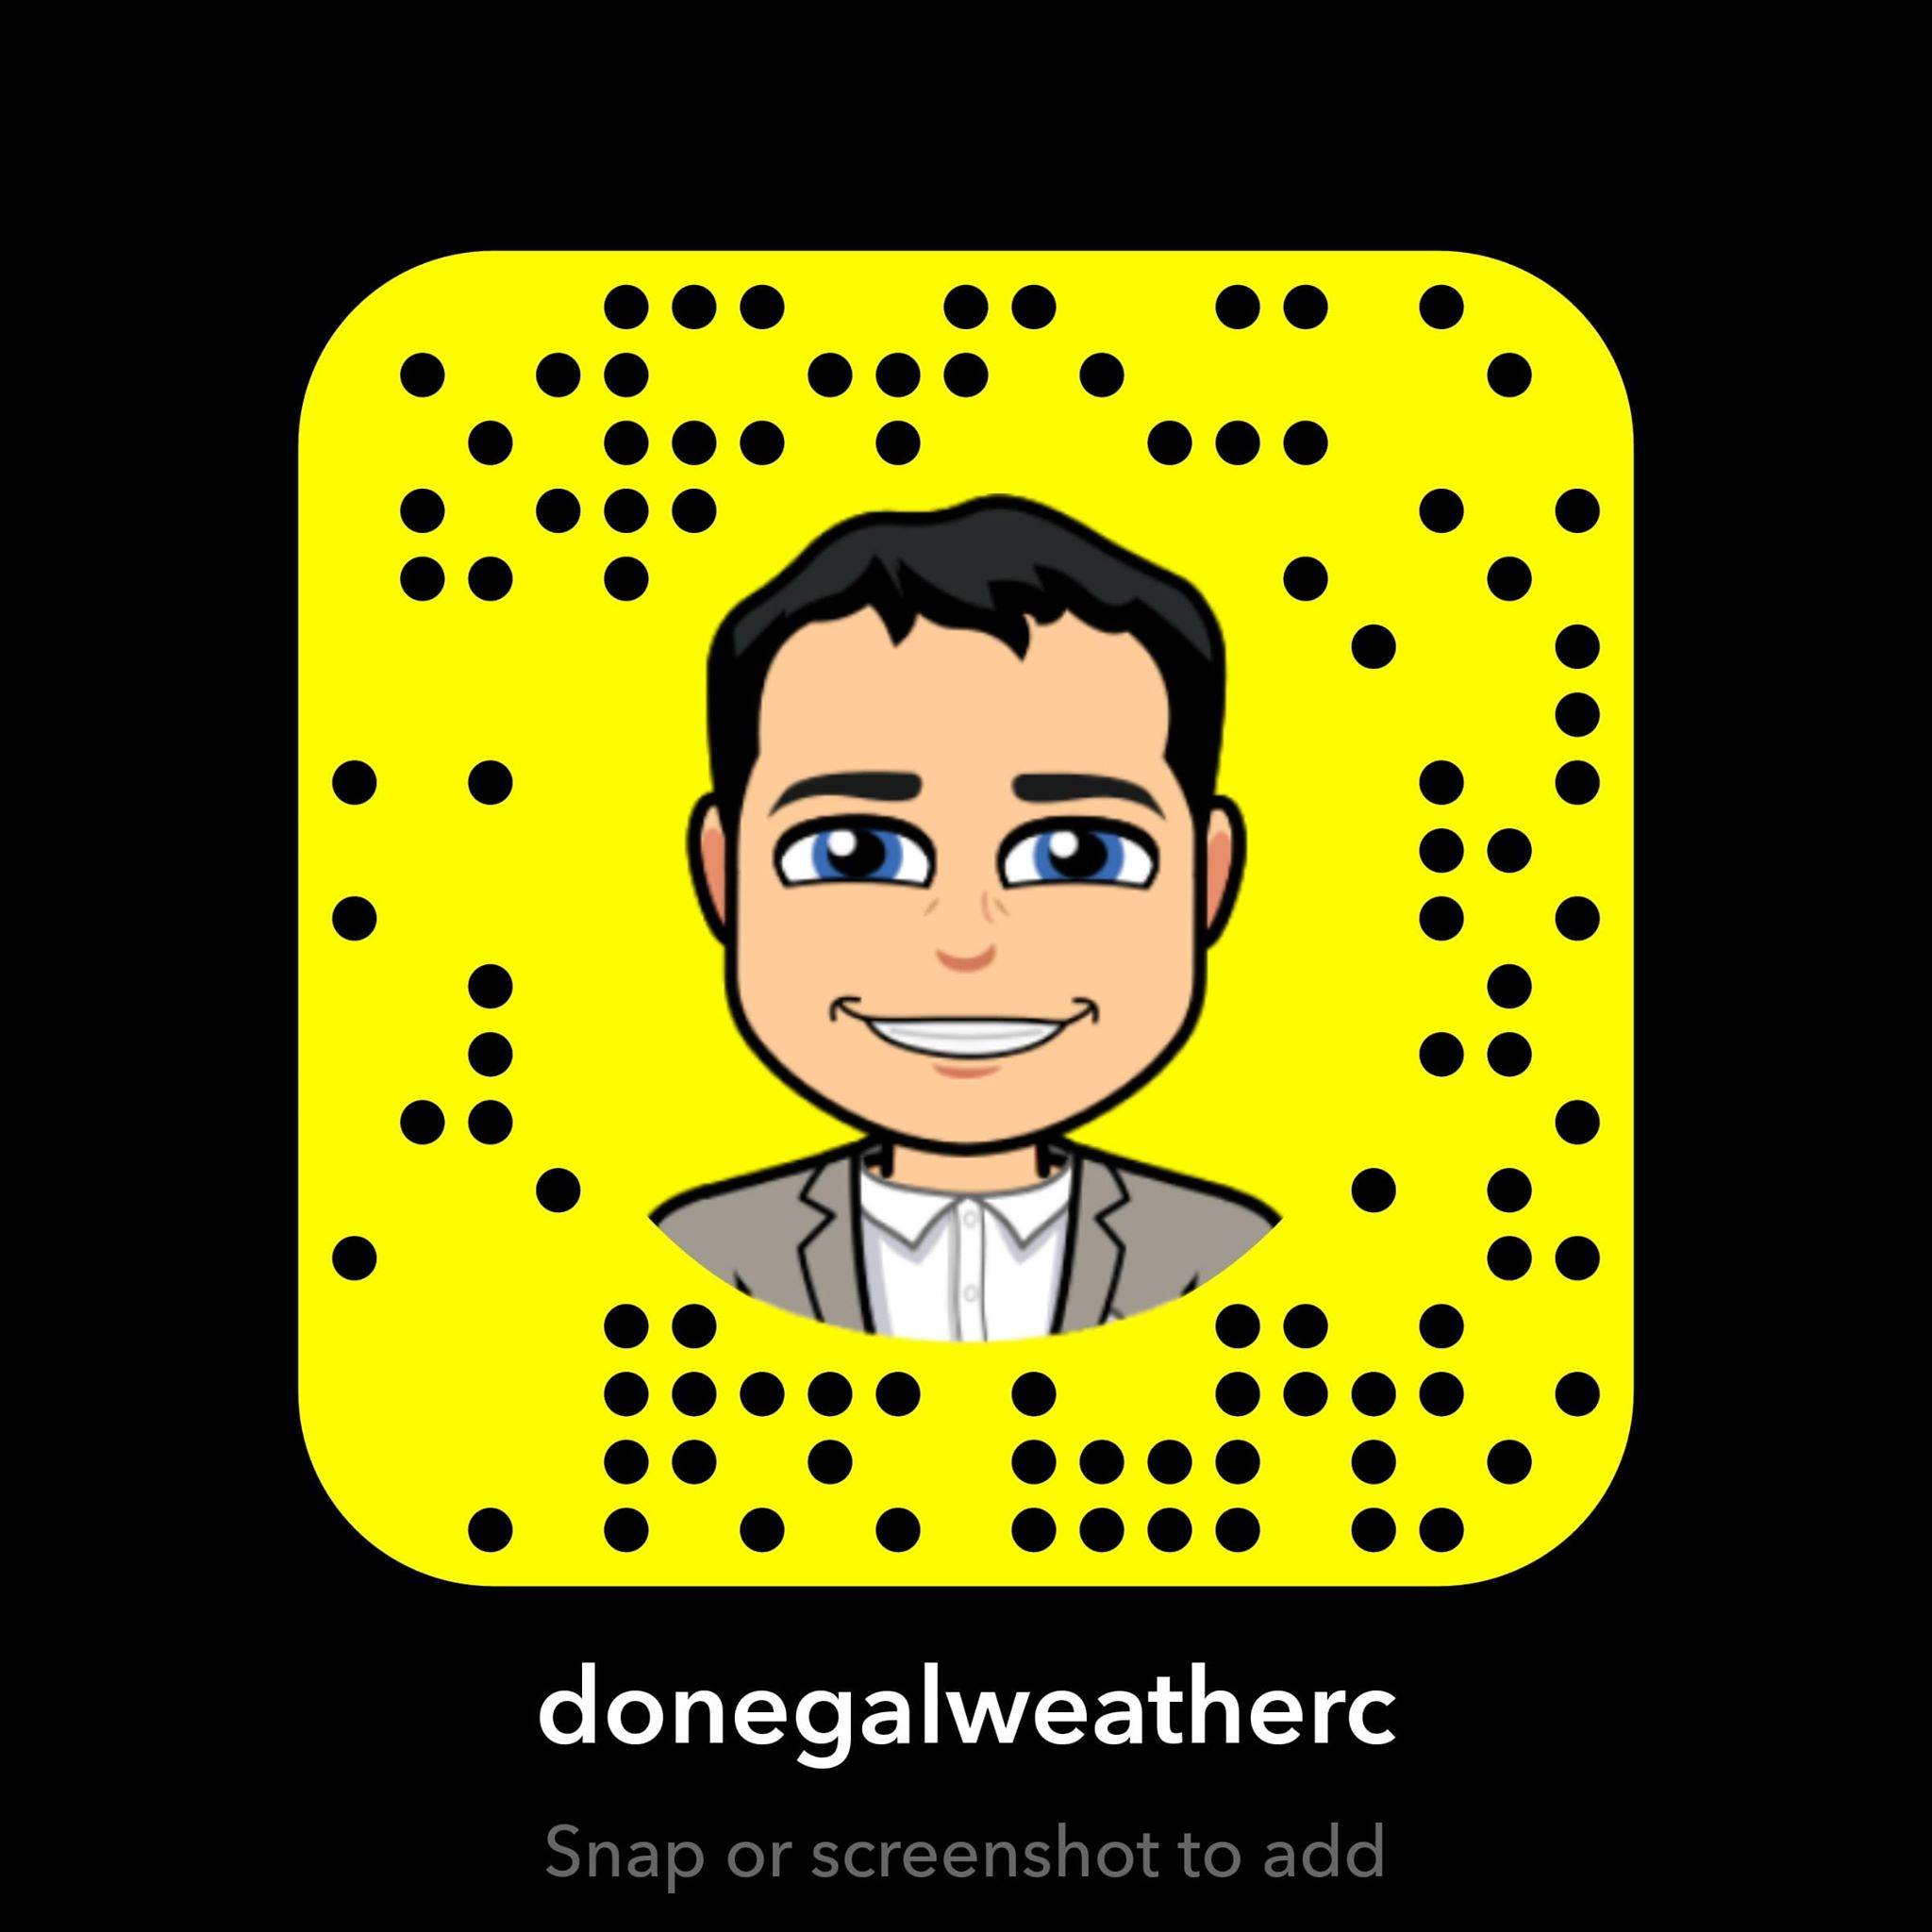 CLICK TO ADD ONSNAPCHAT